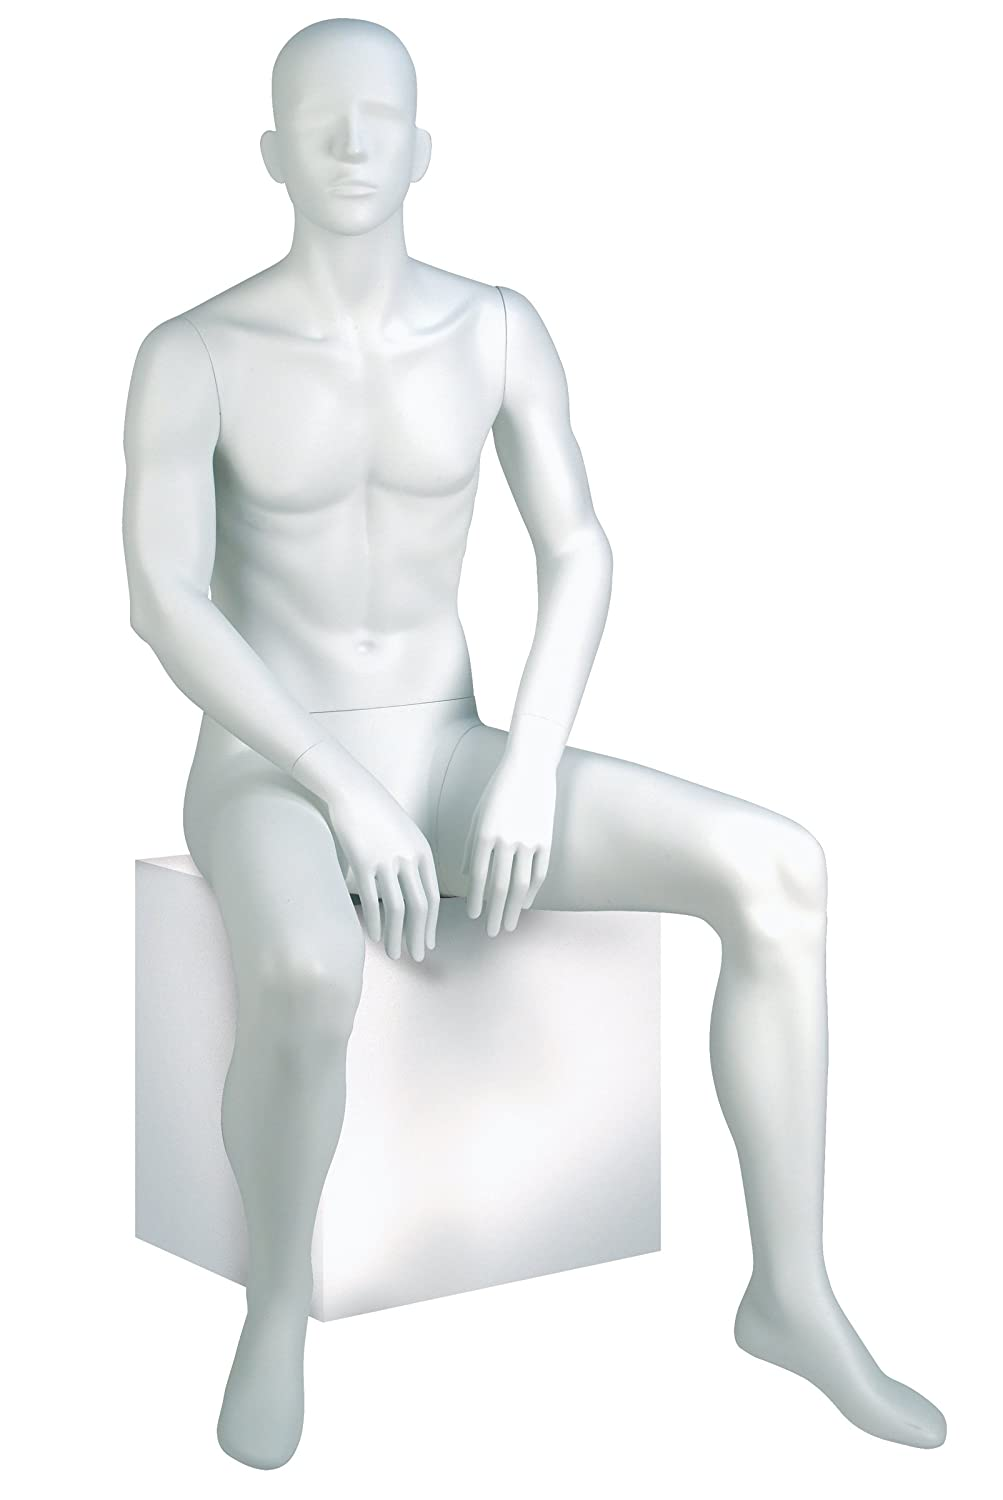 Econoco GEN-5H-OV Male Mannequin, Oval Head, Seated, True White